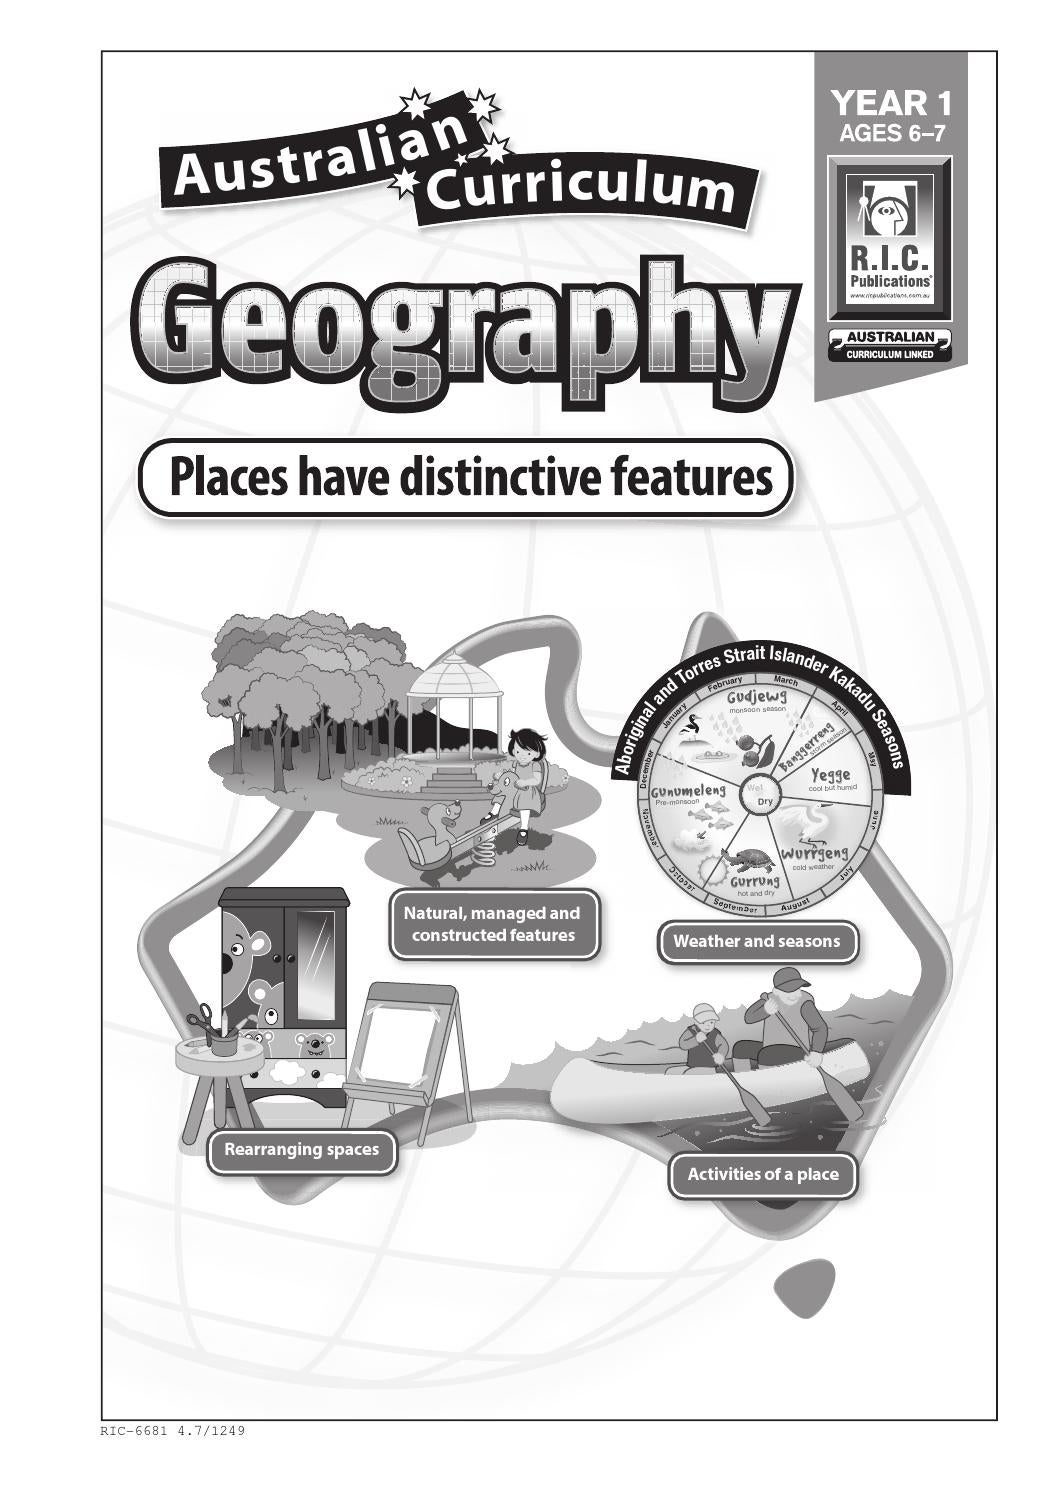 Australian Curriculum Geography Year 1 By Teacher Superstore Issuu How to teach kids where in the world they live by using simple circles to show the planet, continent, country, state, city, street, home! australian curriculum geography year